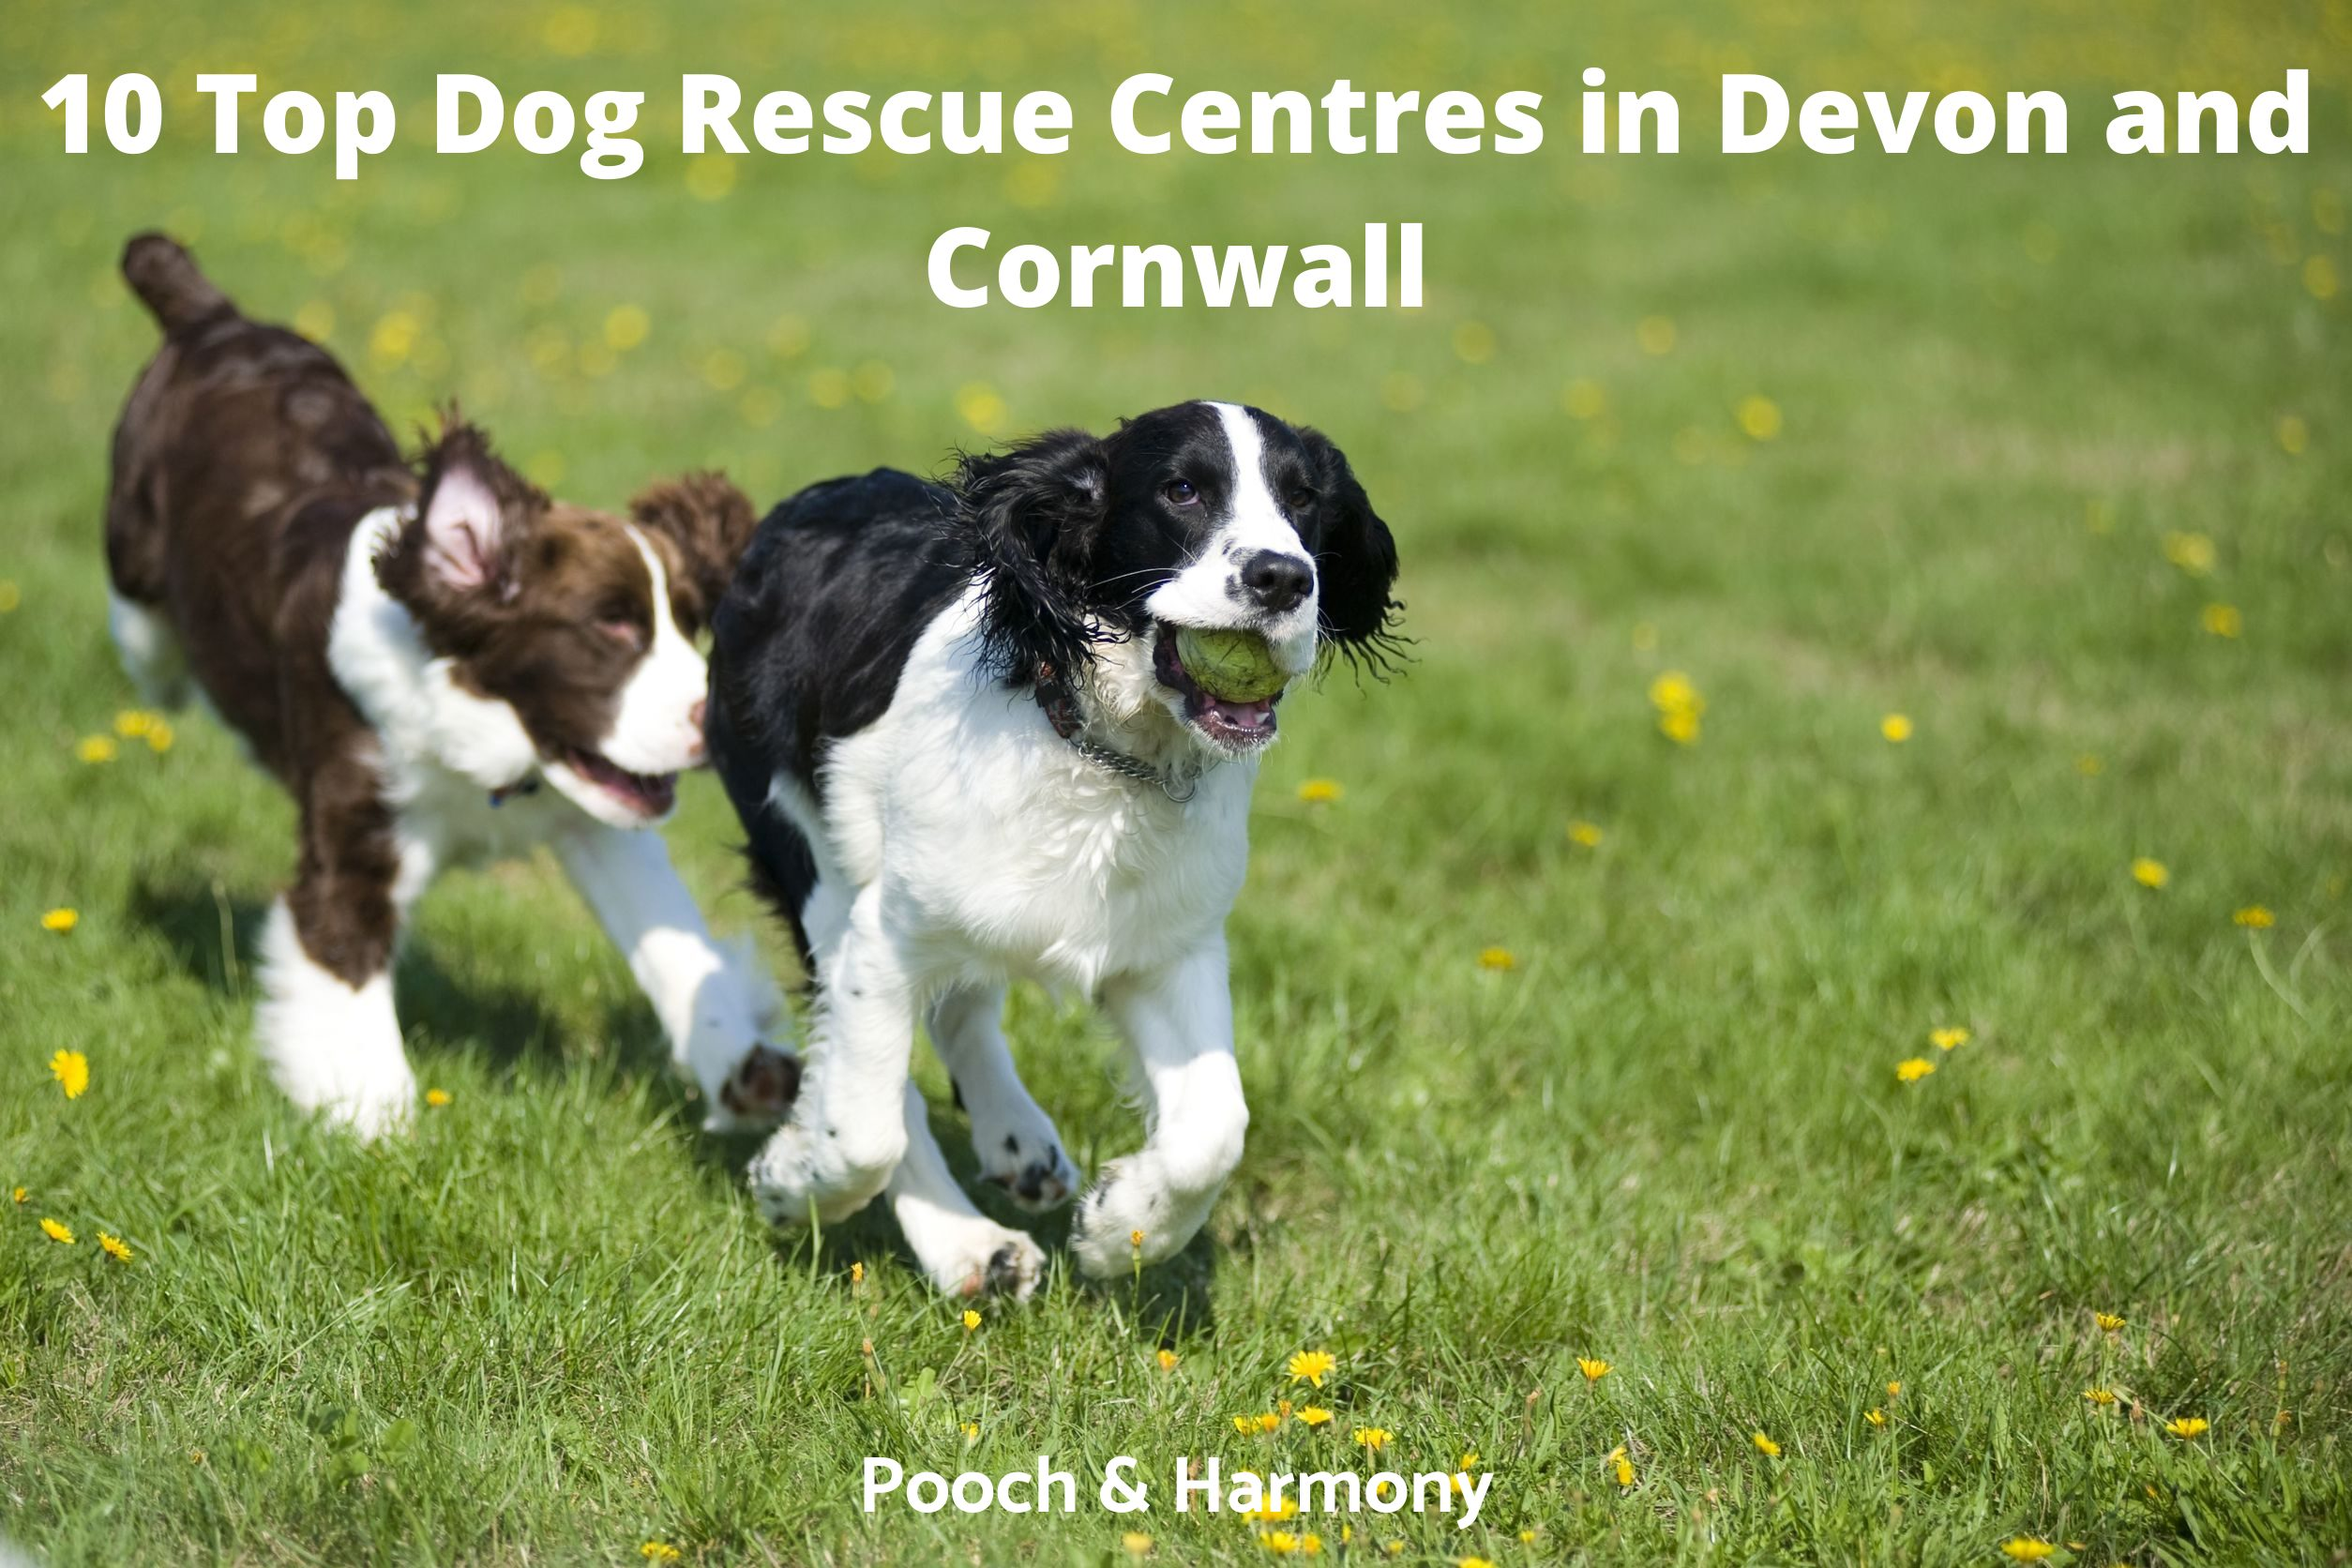 Dog Rescue Centres in Devon and Cornwall